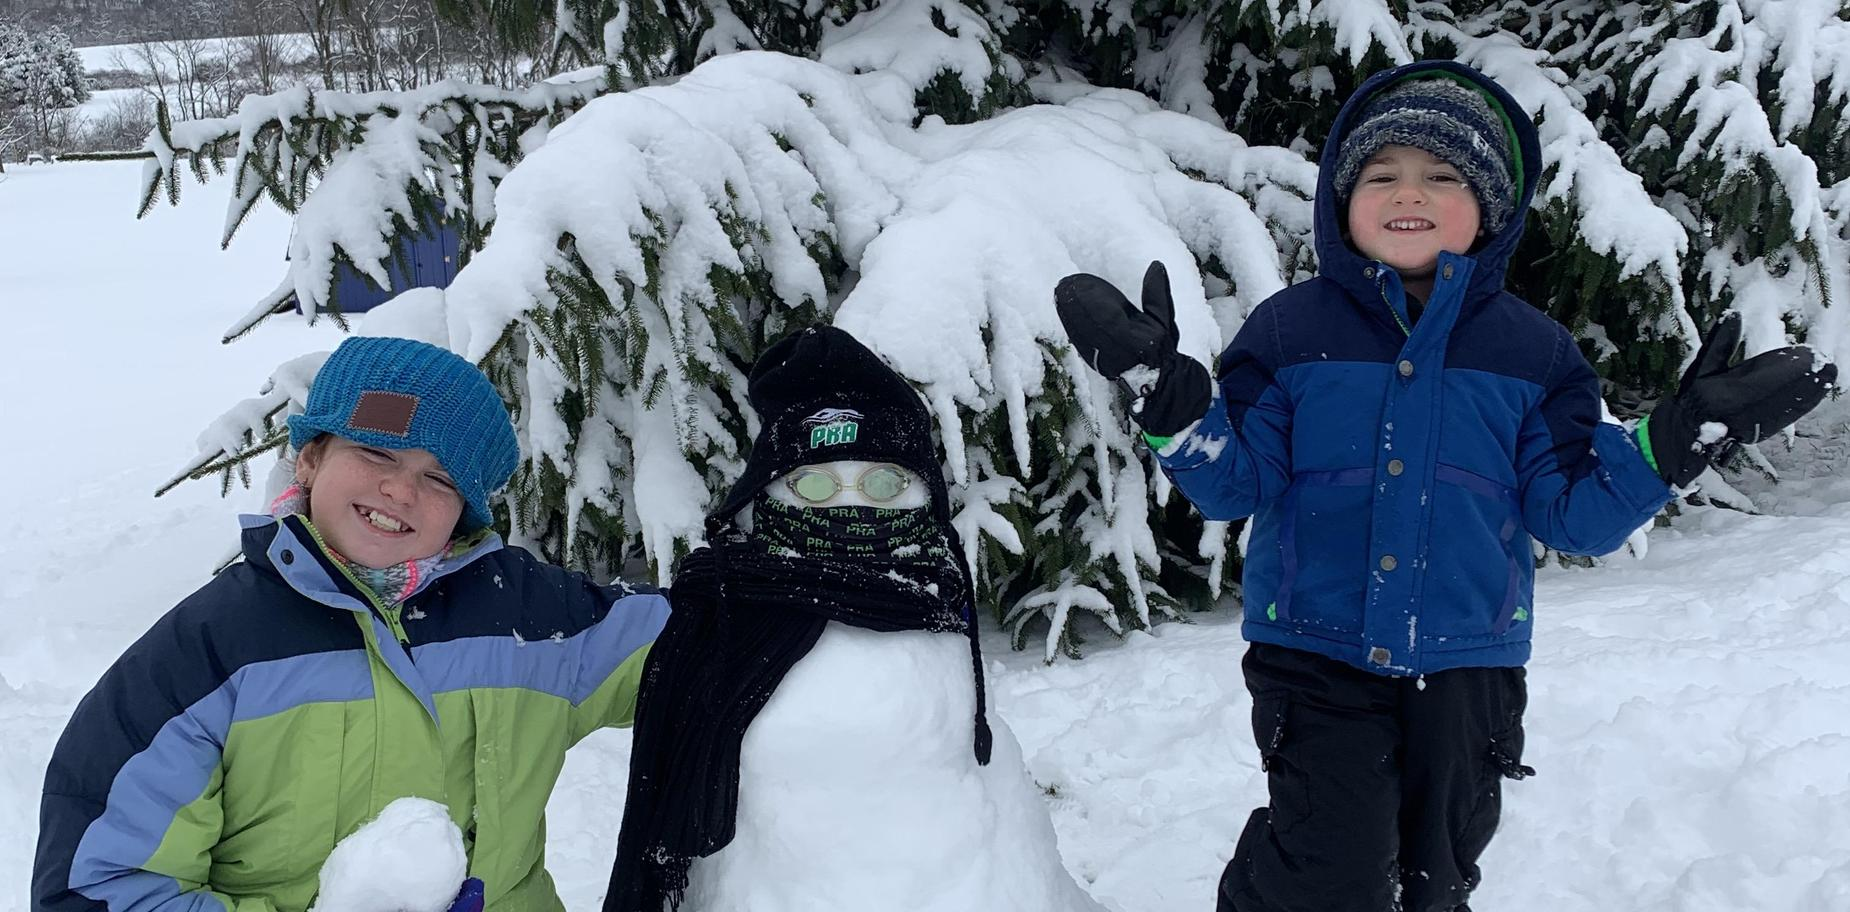 two kids and a snowman in the snow